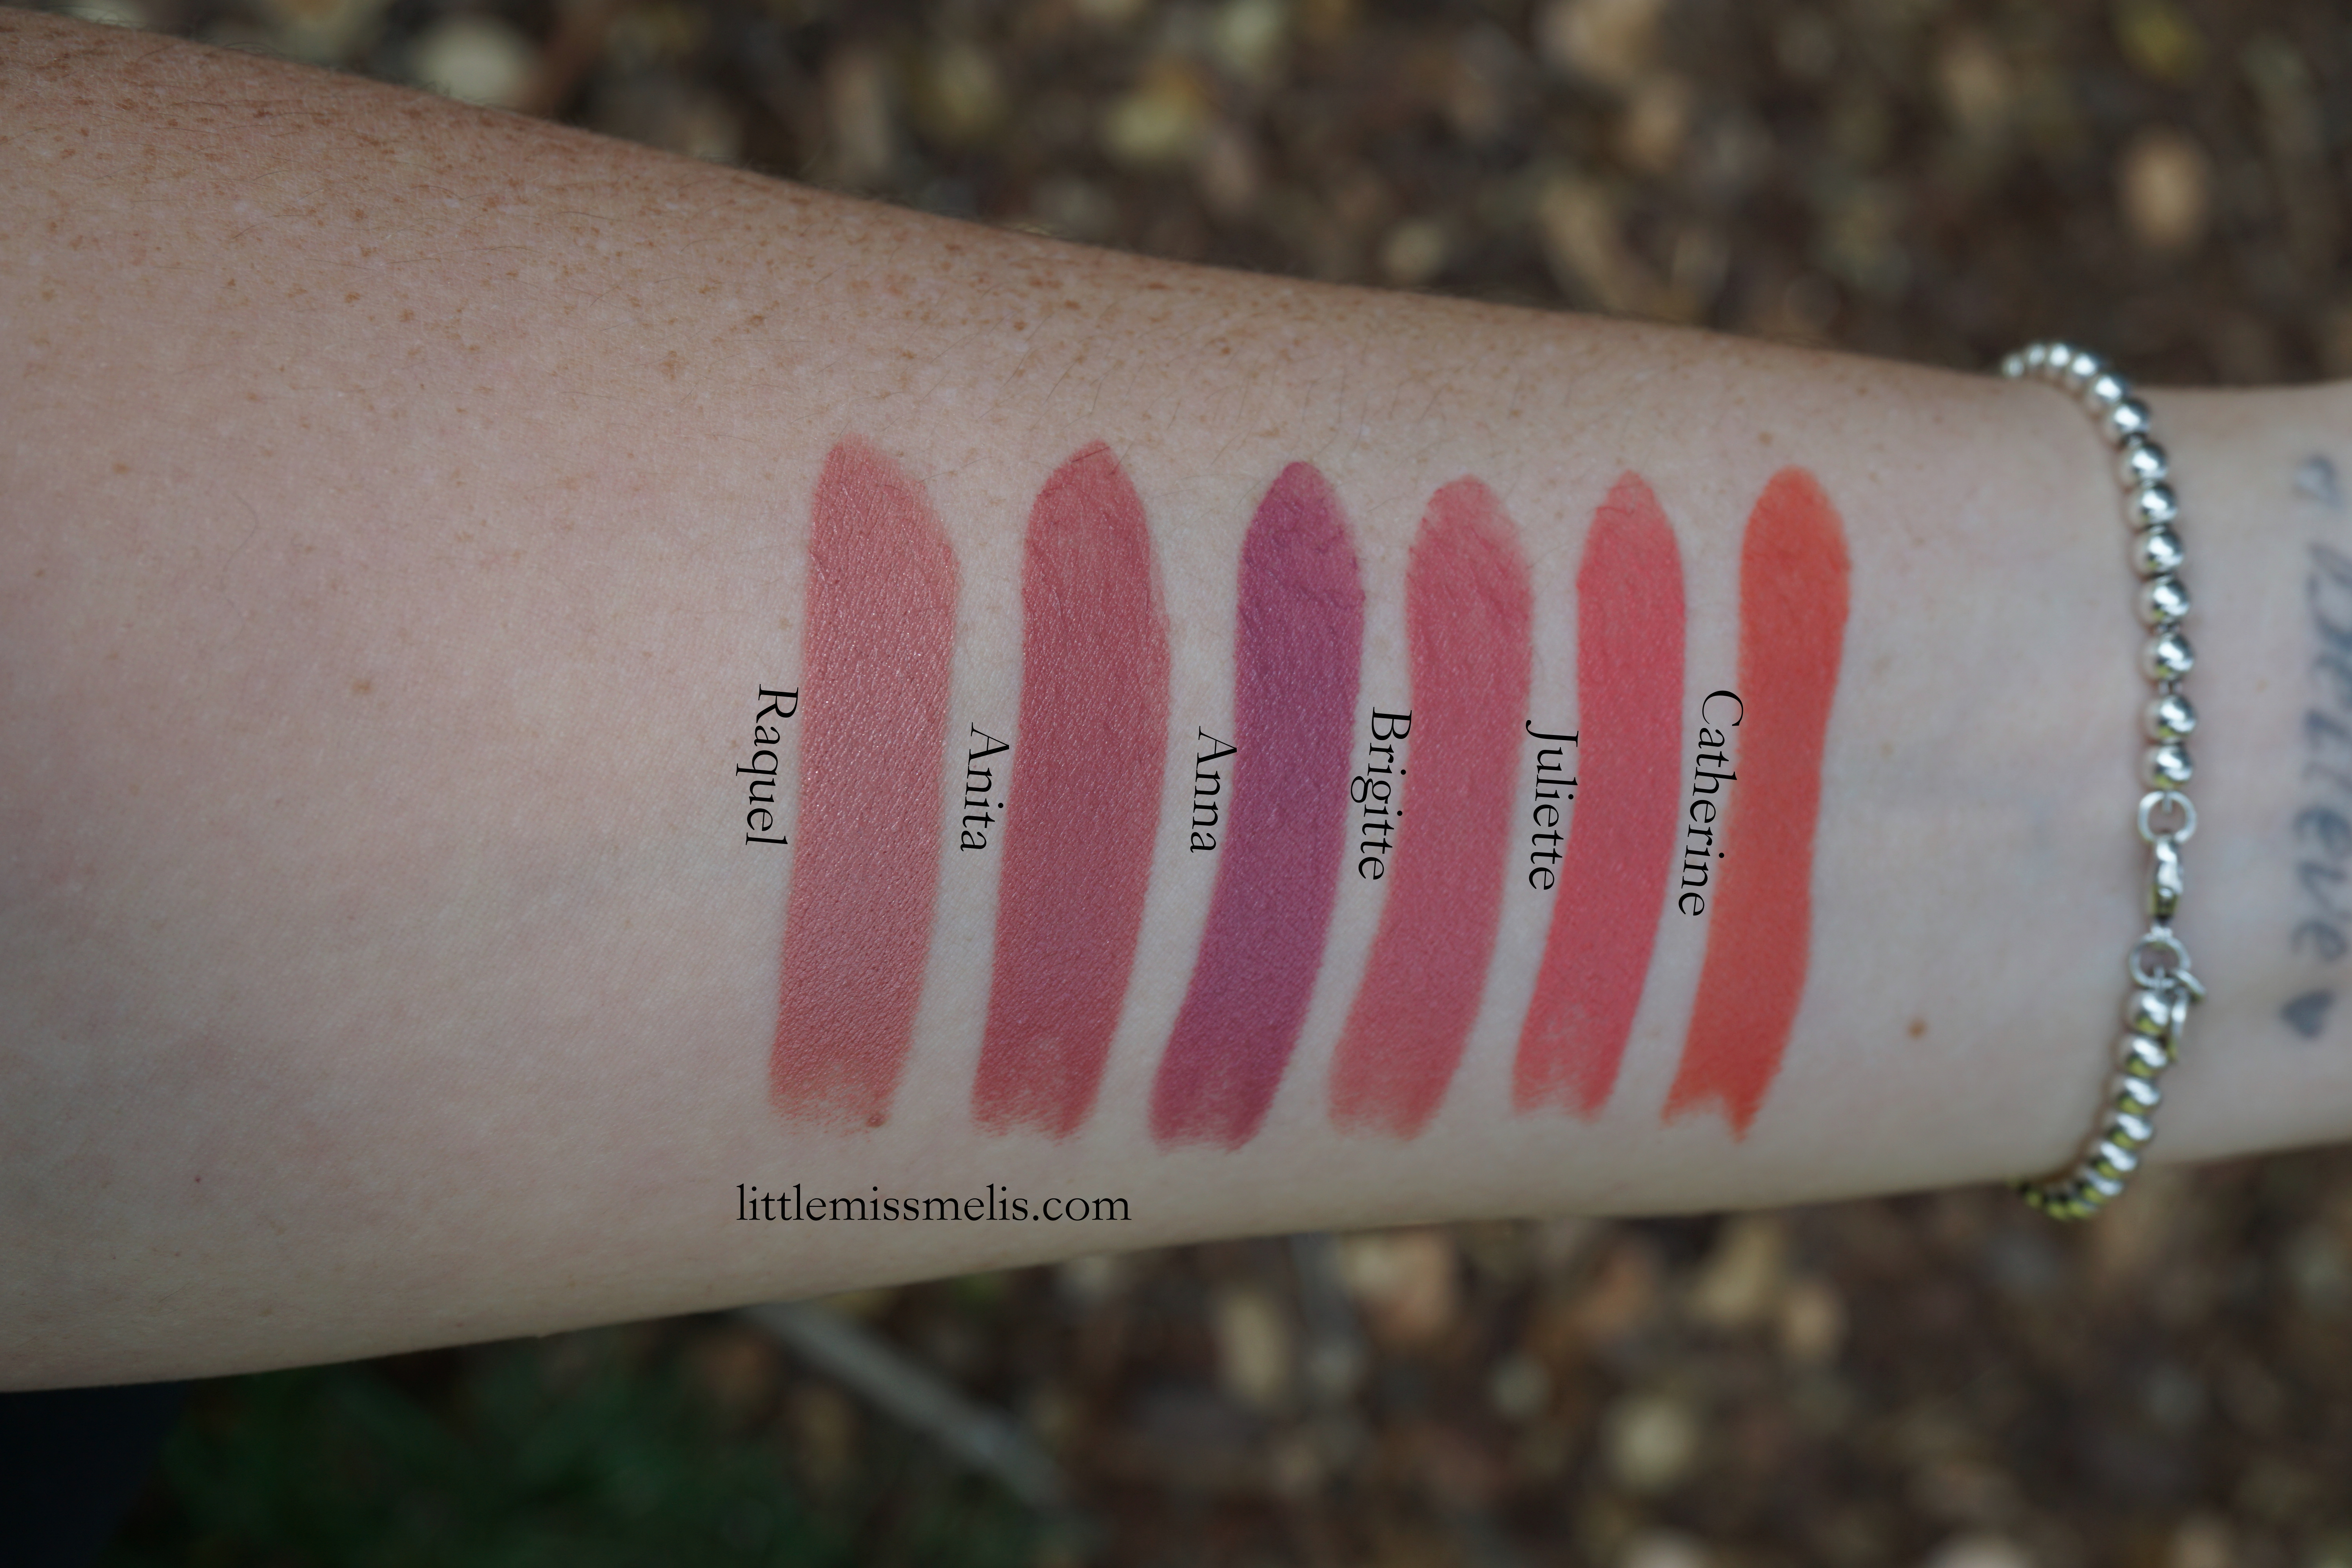 Nars Audacious Lipstick – Review and Swatches – LittleMissMelis